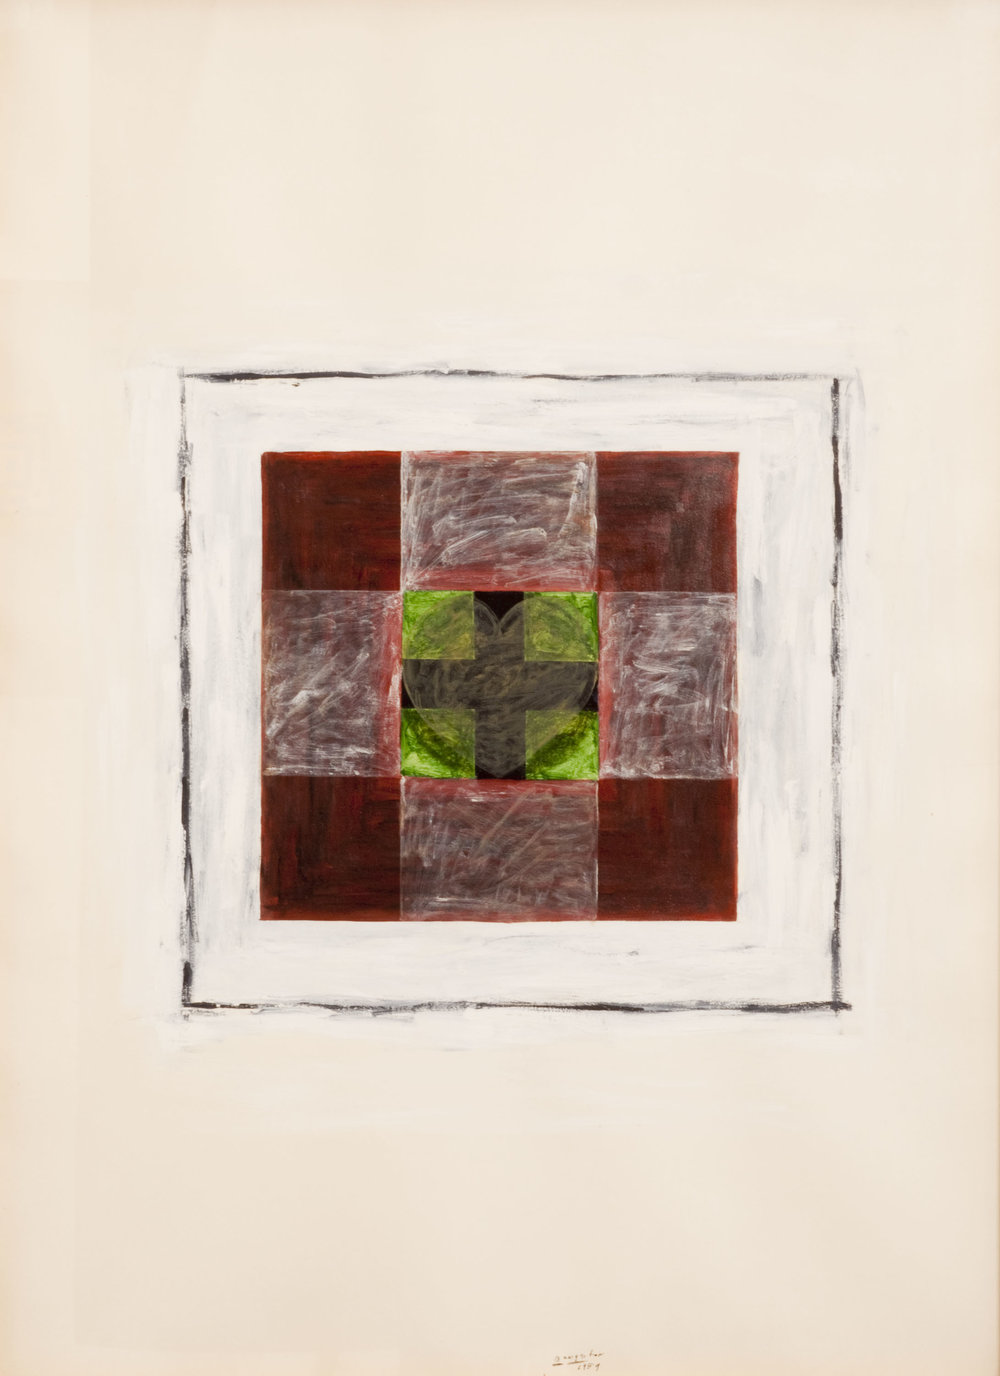 Billy Al Bengston  Untitled,  1959. Watercolor on paper, 21.5 x 29.75in.